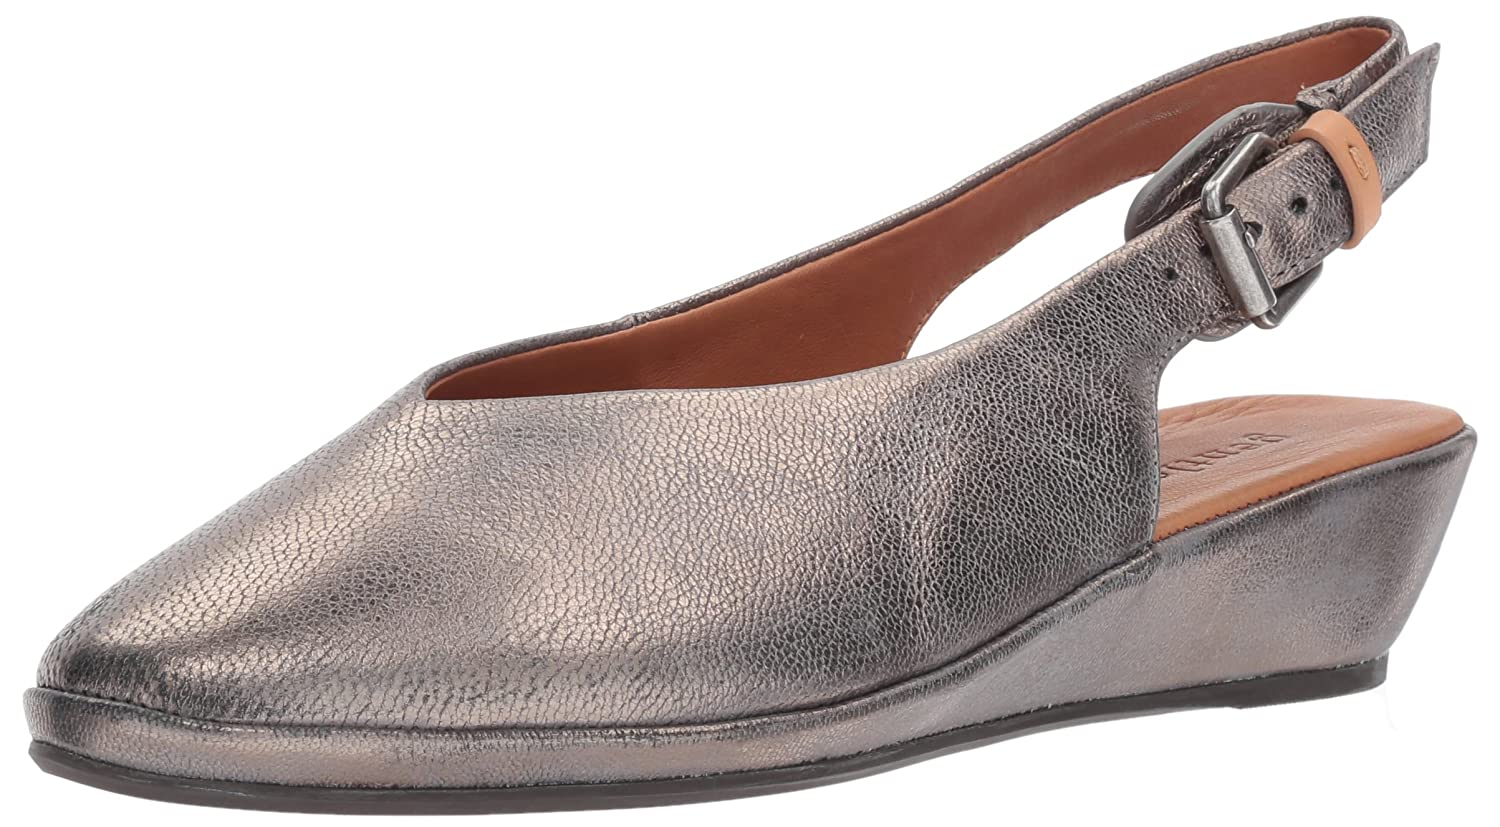 Gentle Souls by Kenneth Cole Women's Noemi Round Toe Low Wedge Slingback - Leather Flat B01NCZJWQS 7.5 B(M) US|Pewter